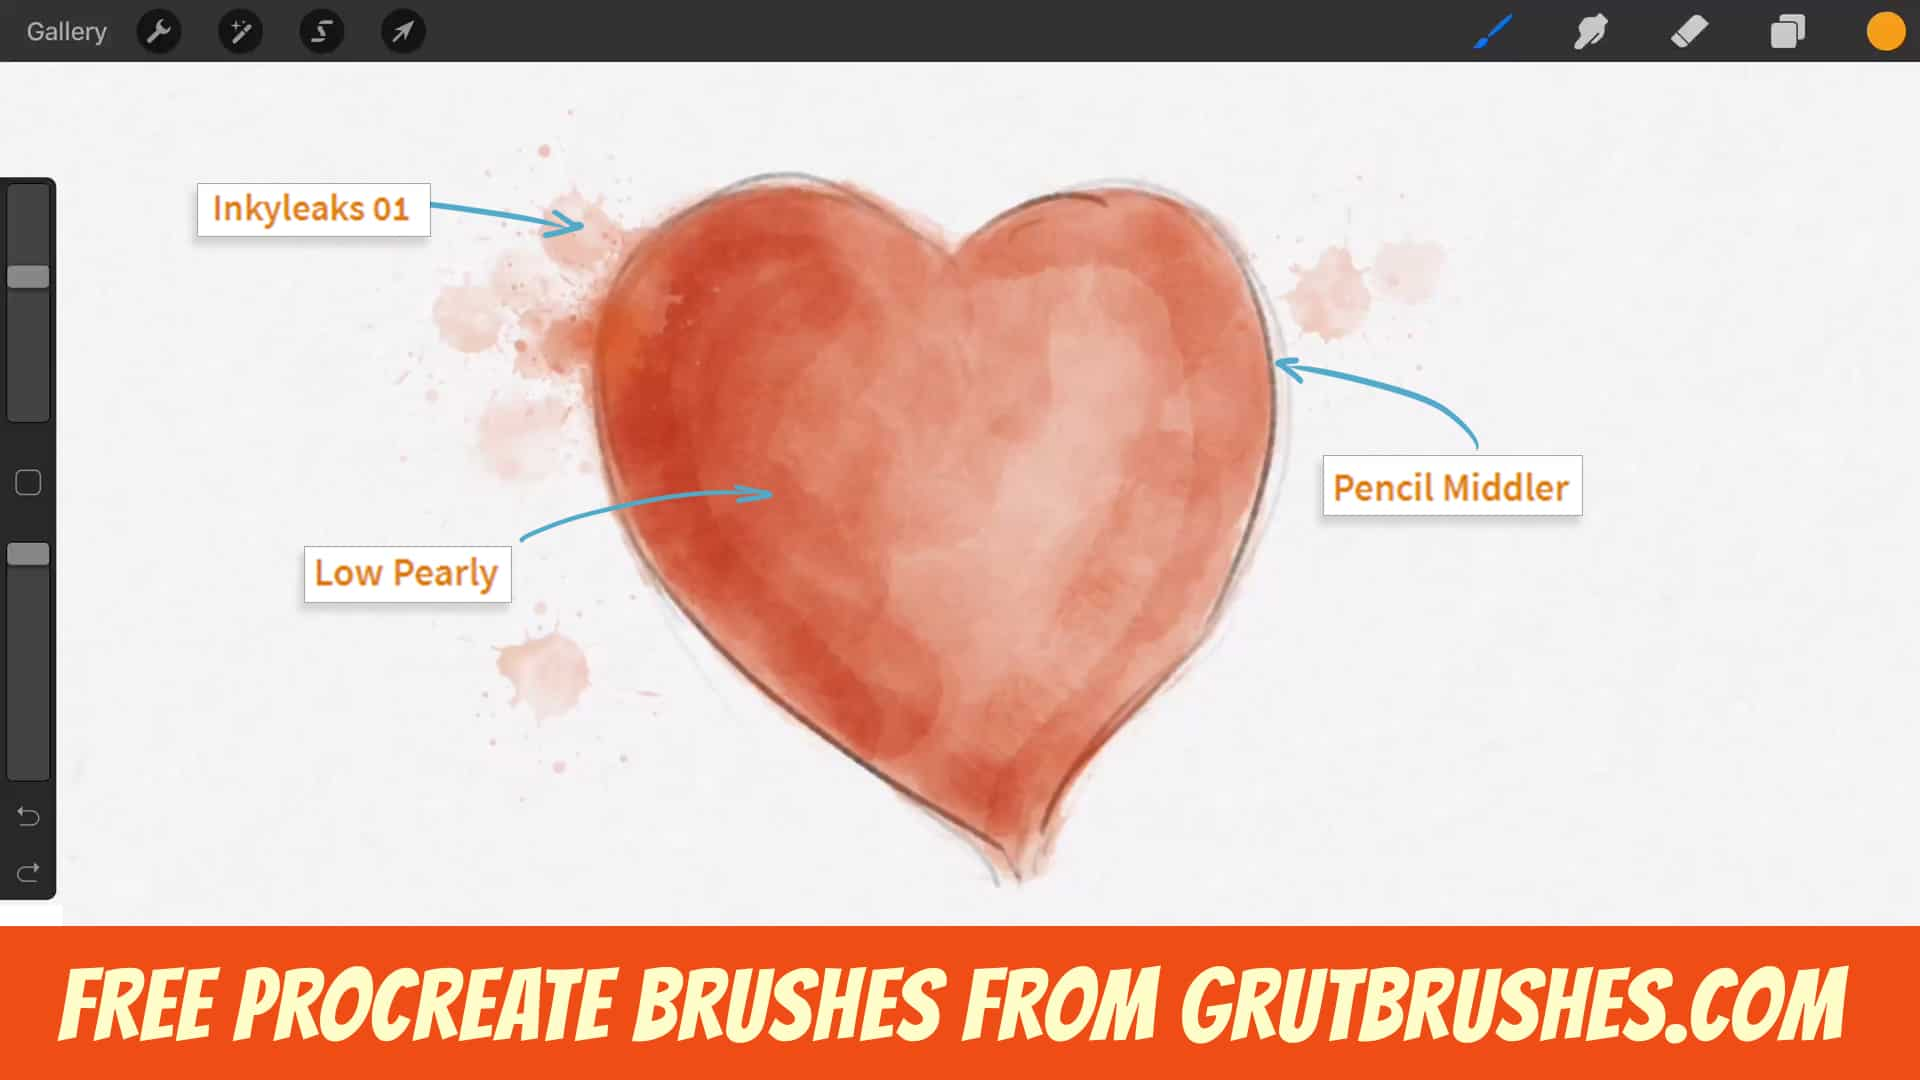 Free Procreate Brushes - GrutBrushes com